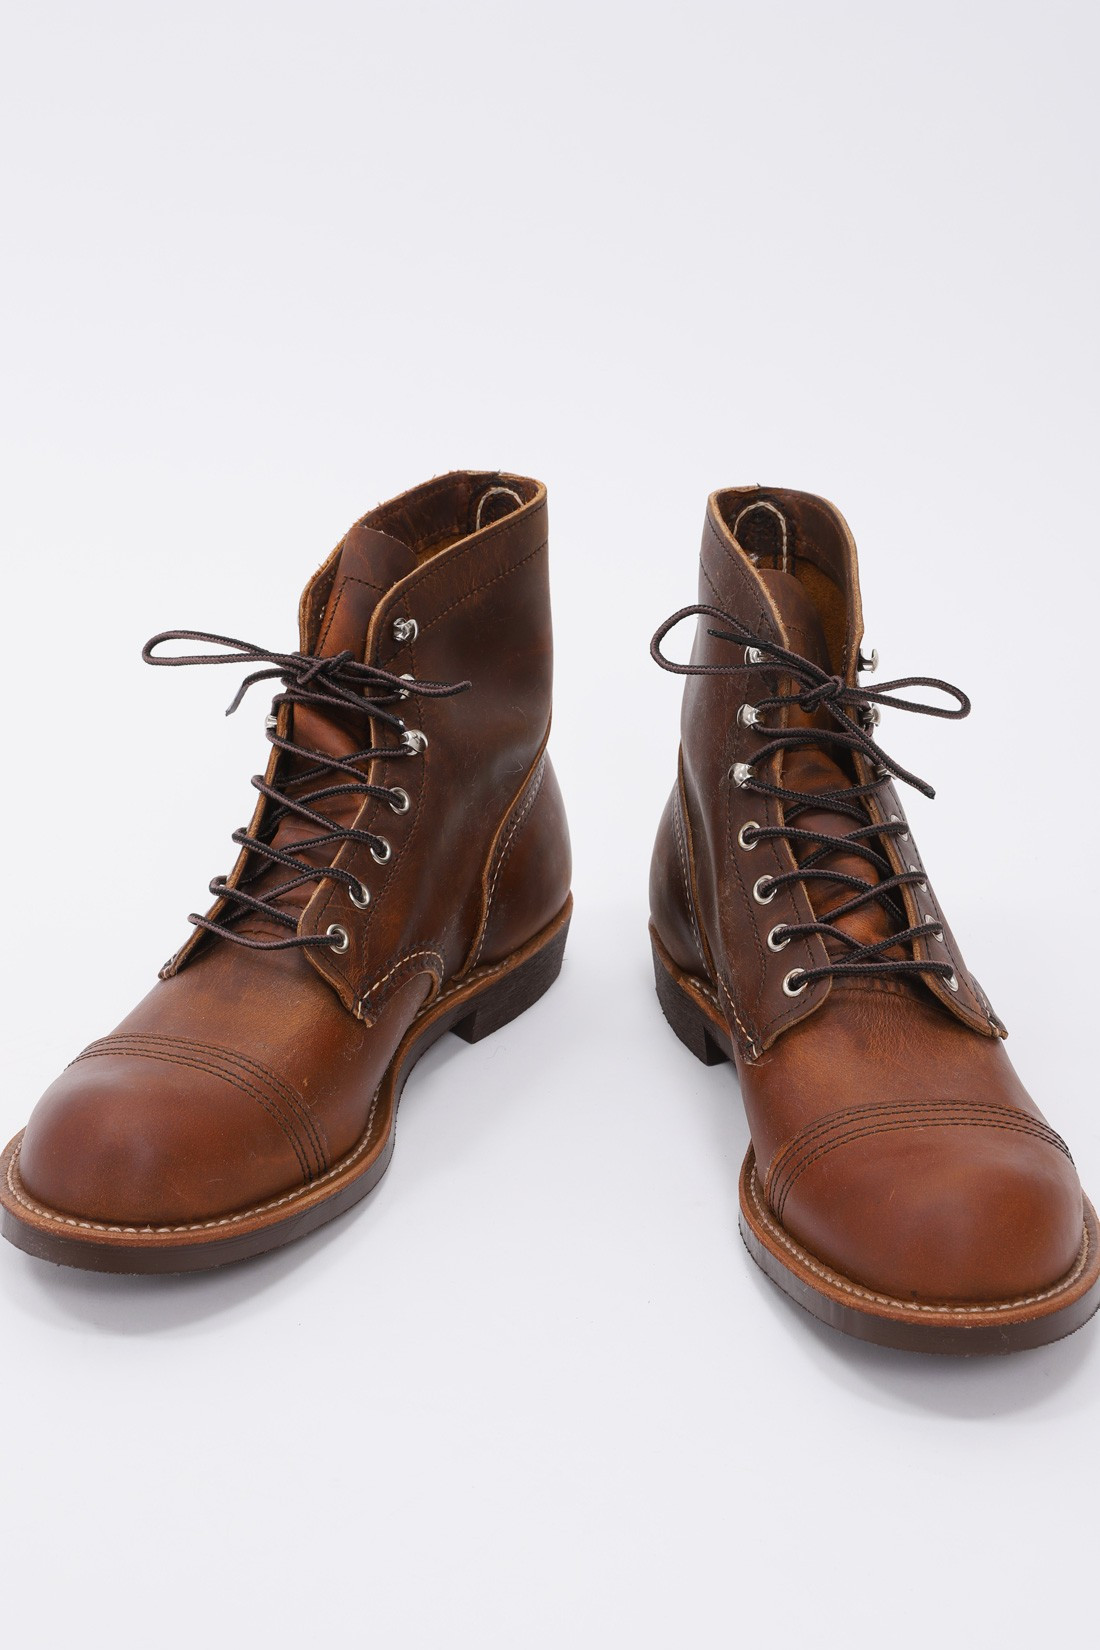 RED WING / Iron ranger style n0.08085 Copper